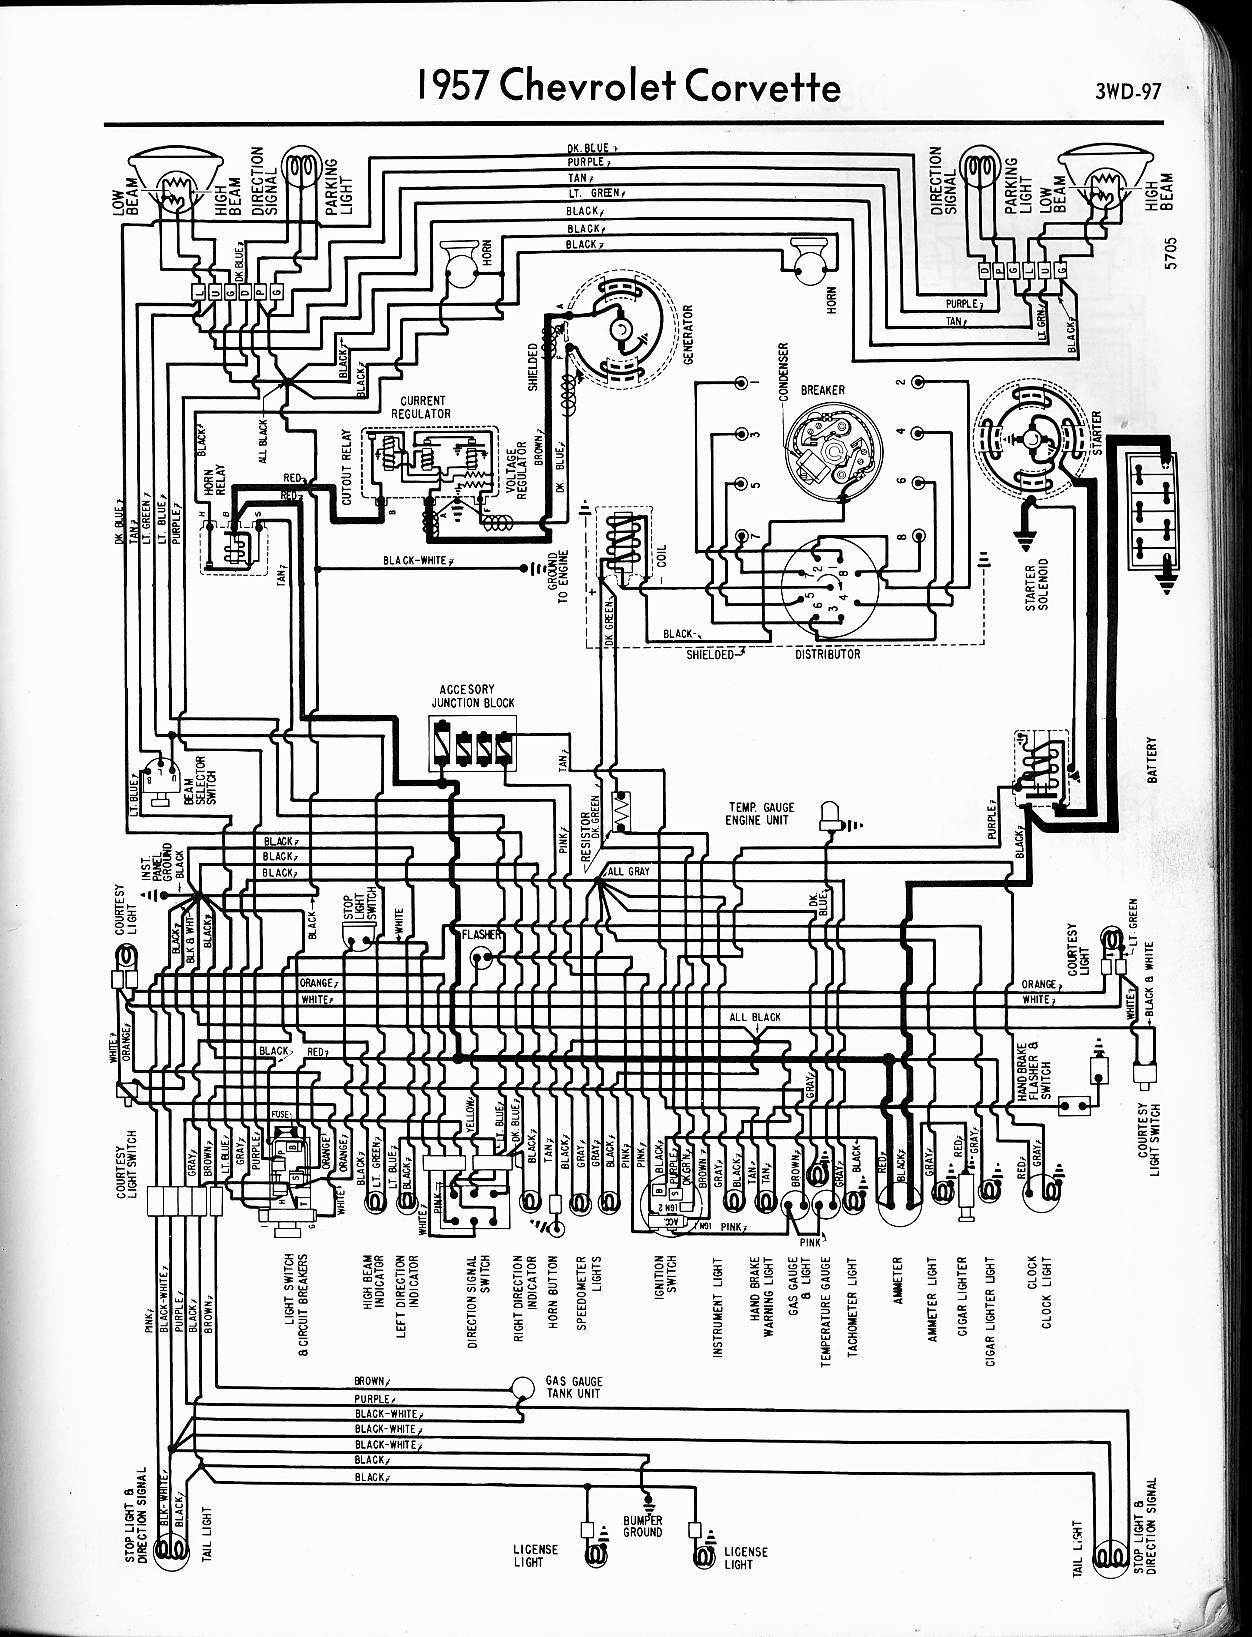 1956 Pontiac Wiring Diagram Reinvent Your Diagrams 1997 Sunfire 2 4 1960 Corvette Detailed Schematics Rh Mrskindsclass Com Bonneville Starter